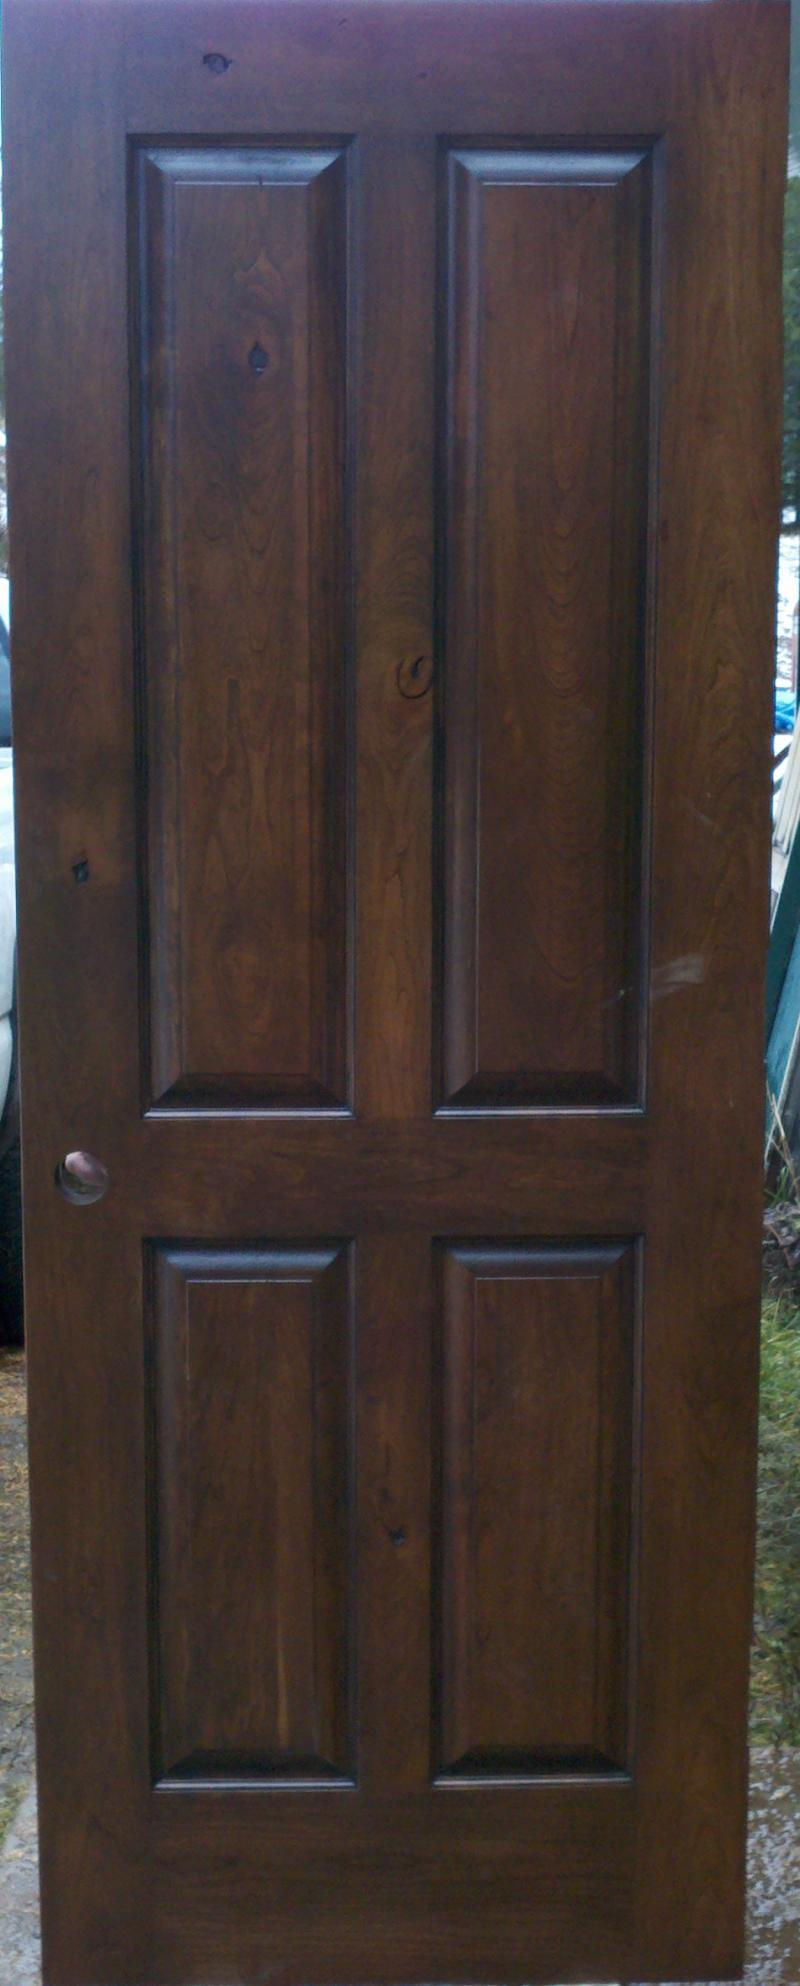 Interior exterior solid wood doors in washington montana ca 4 rustic cherry raised panels eventelaan Gallery